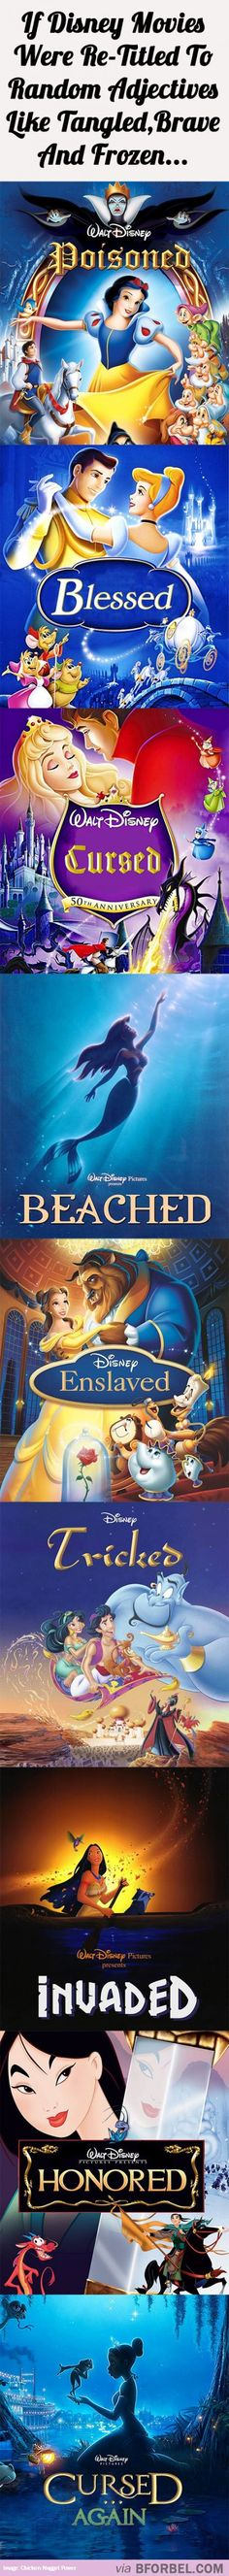 If DP cine Were Re-Titled to misceláneo Adjectives (Tangled, Brave, Frozen)